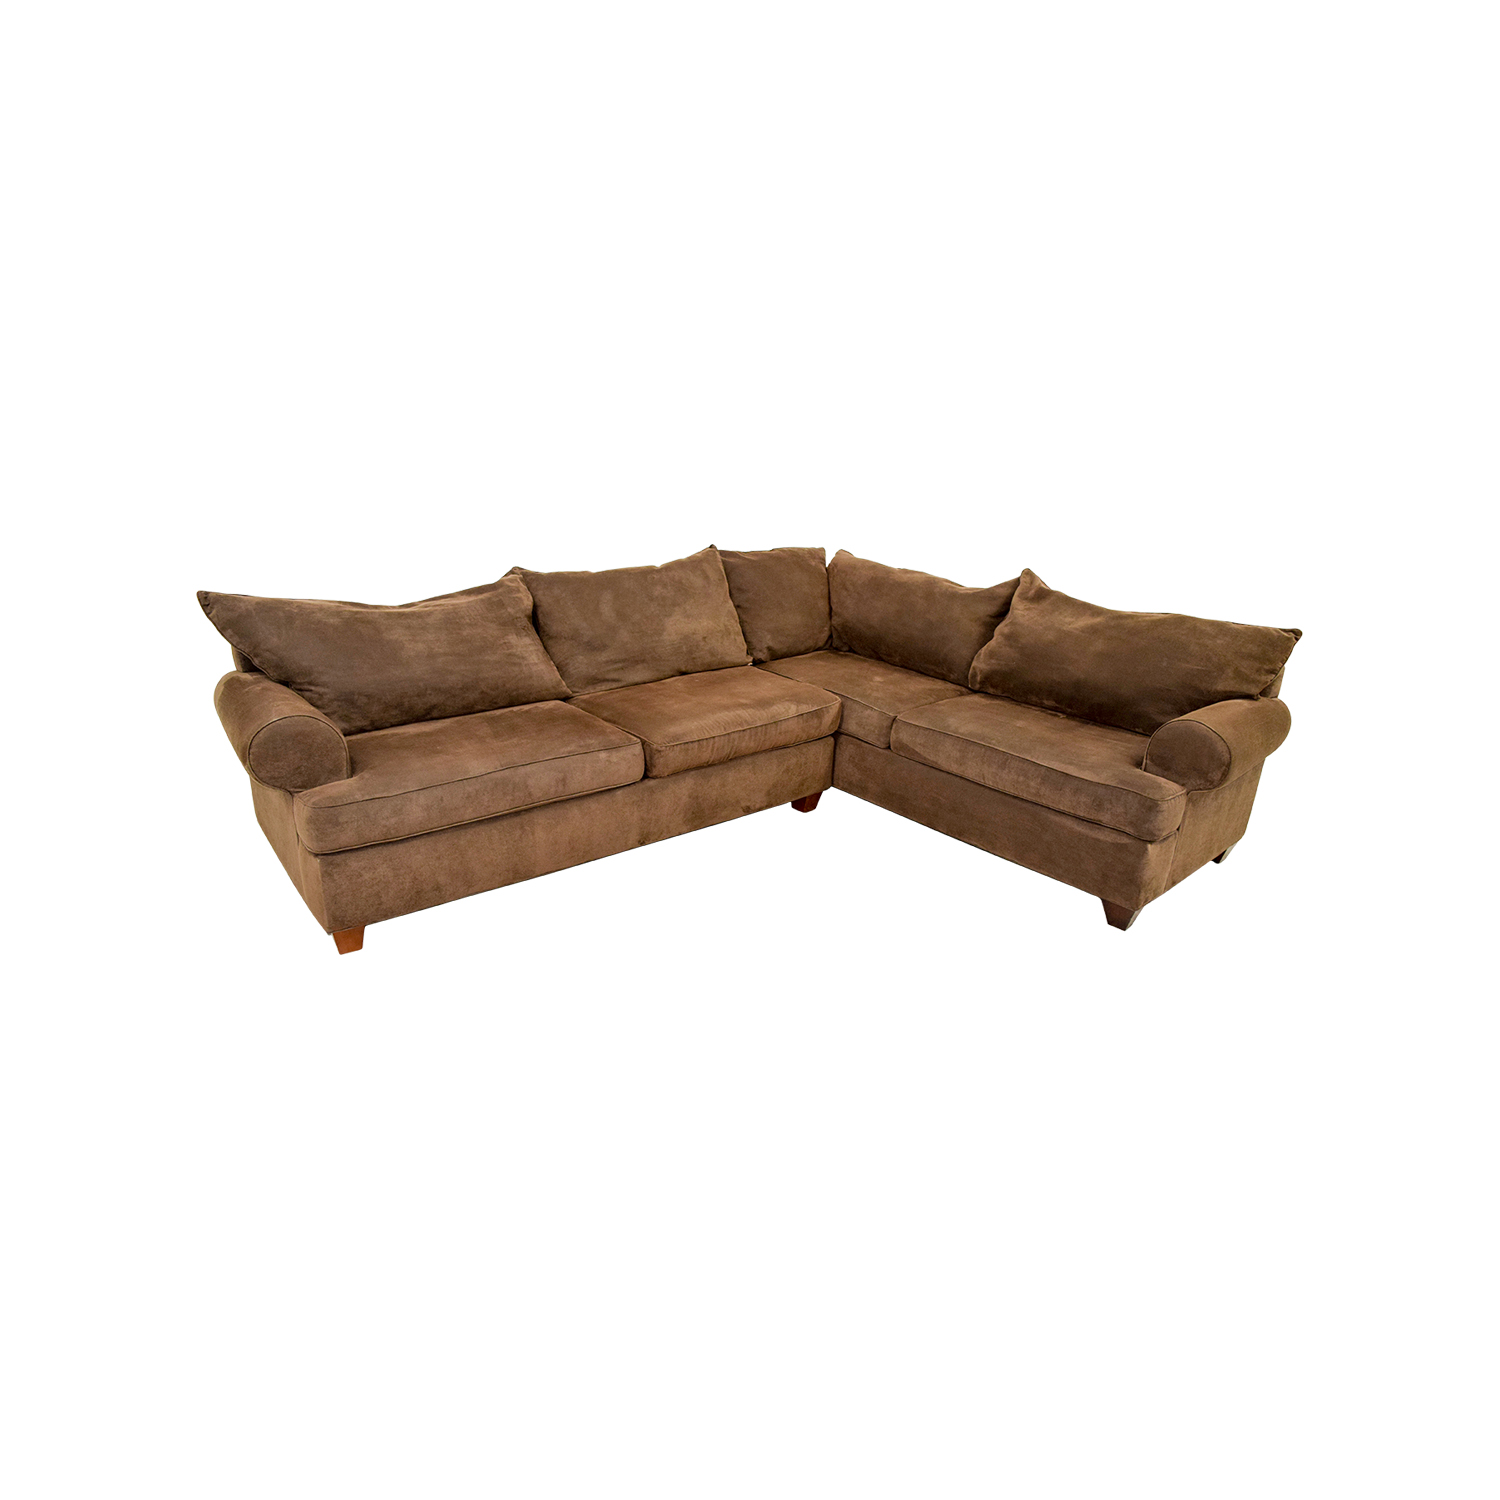 buy  Brown Corduroy L-Shaped Sectional Couch online